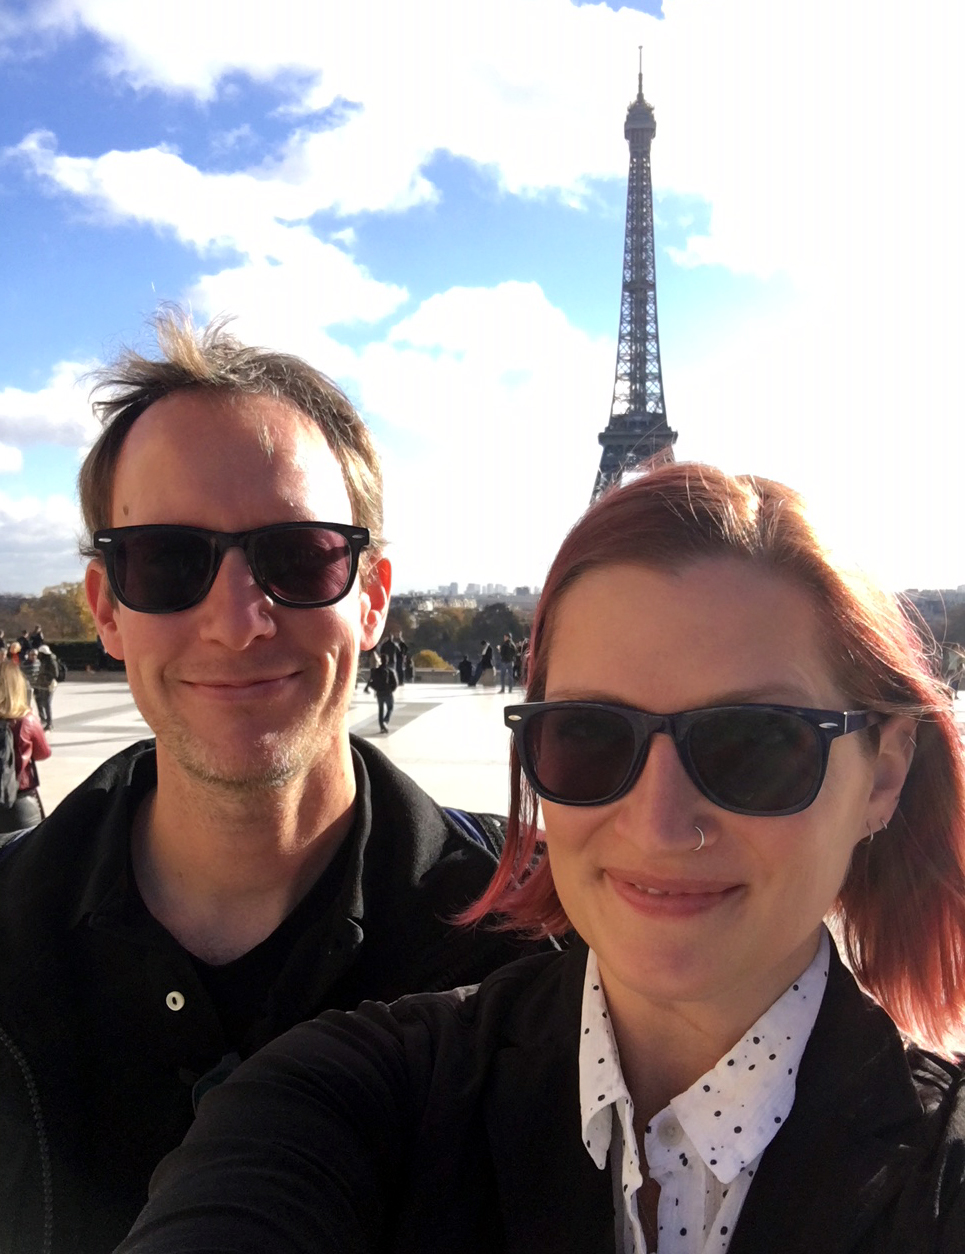 Eiffel Tower // The Downsides of Off-Peak Travel // Our Next Life // early retirement, financial independence, FIRE movement, retire early, work optional